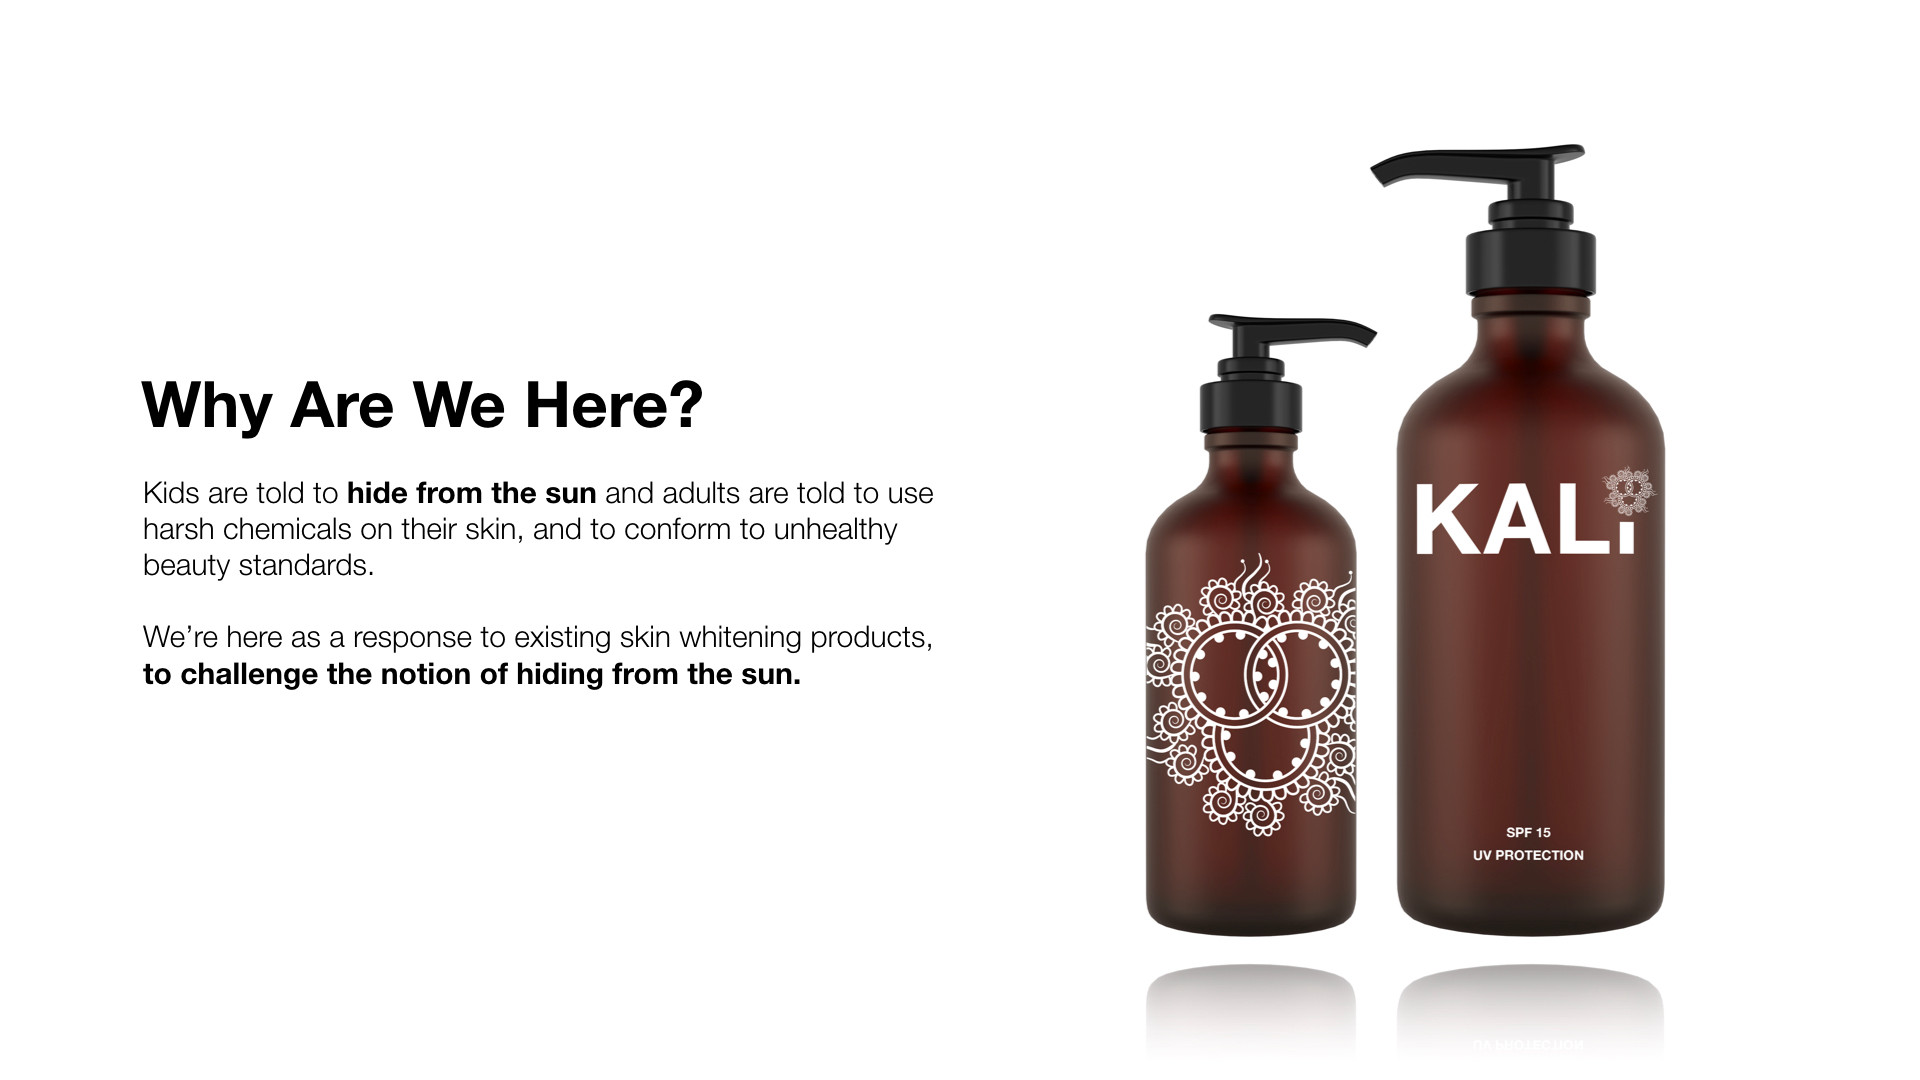 KALI comes forth as a direct response to Fair & Lovely's fairness meter.